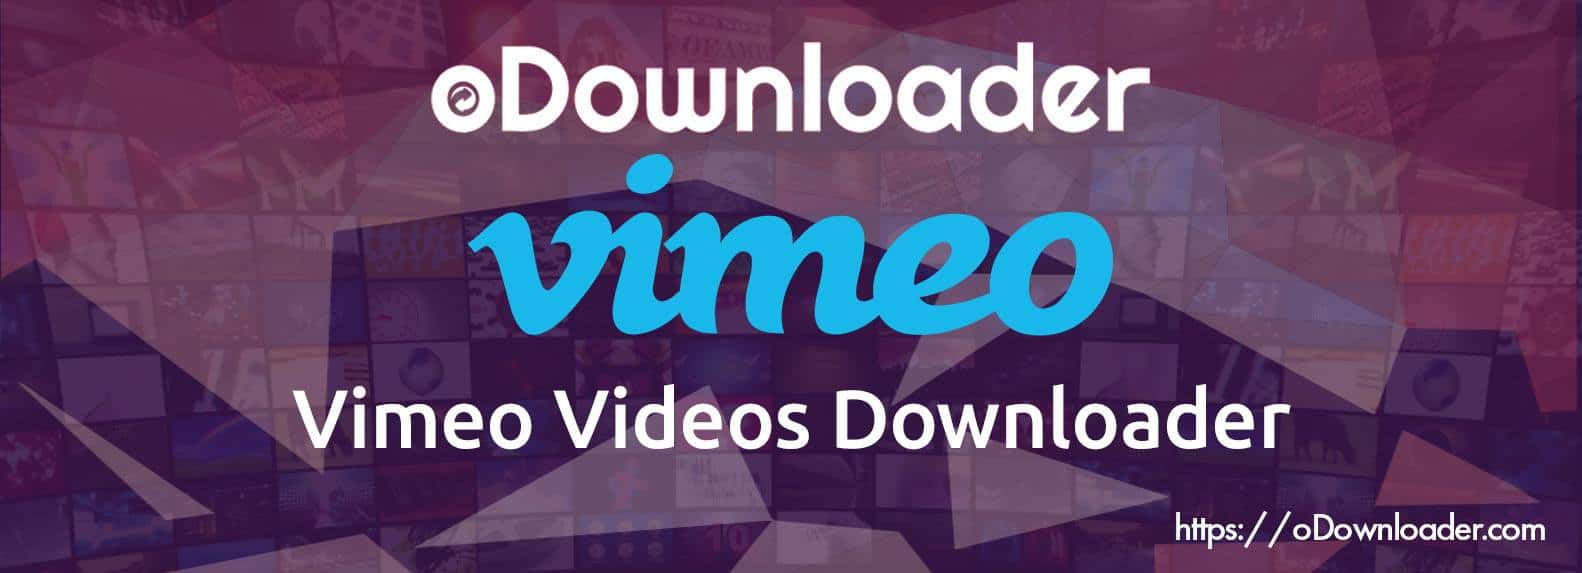 Vimeo Videos Downloader